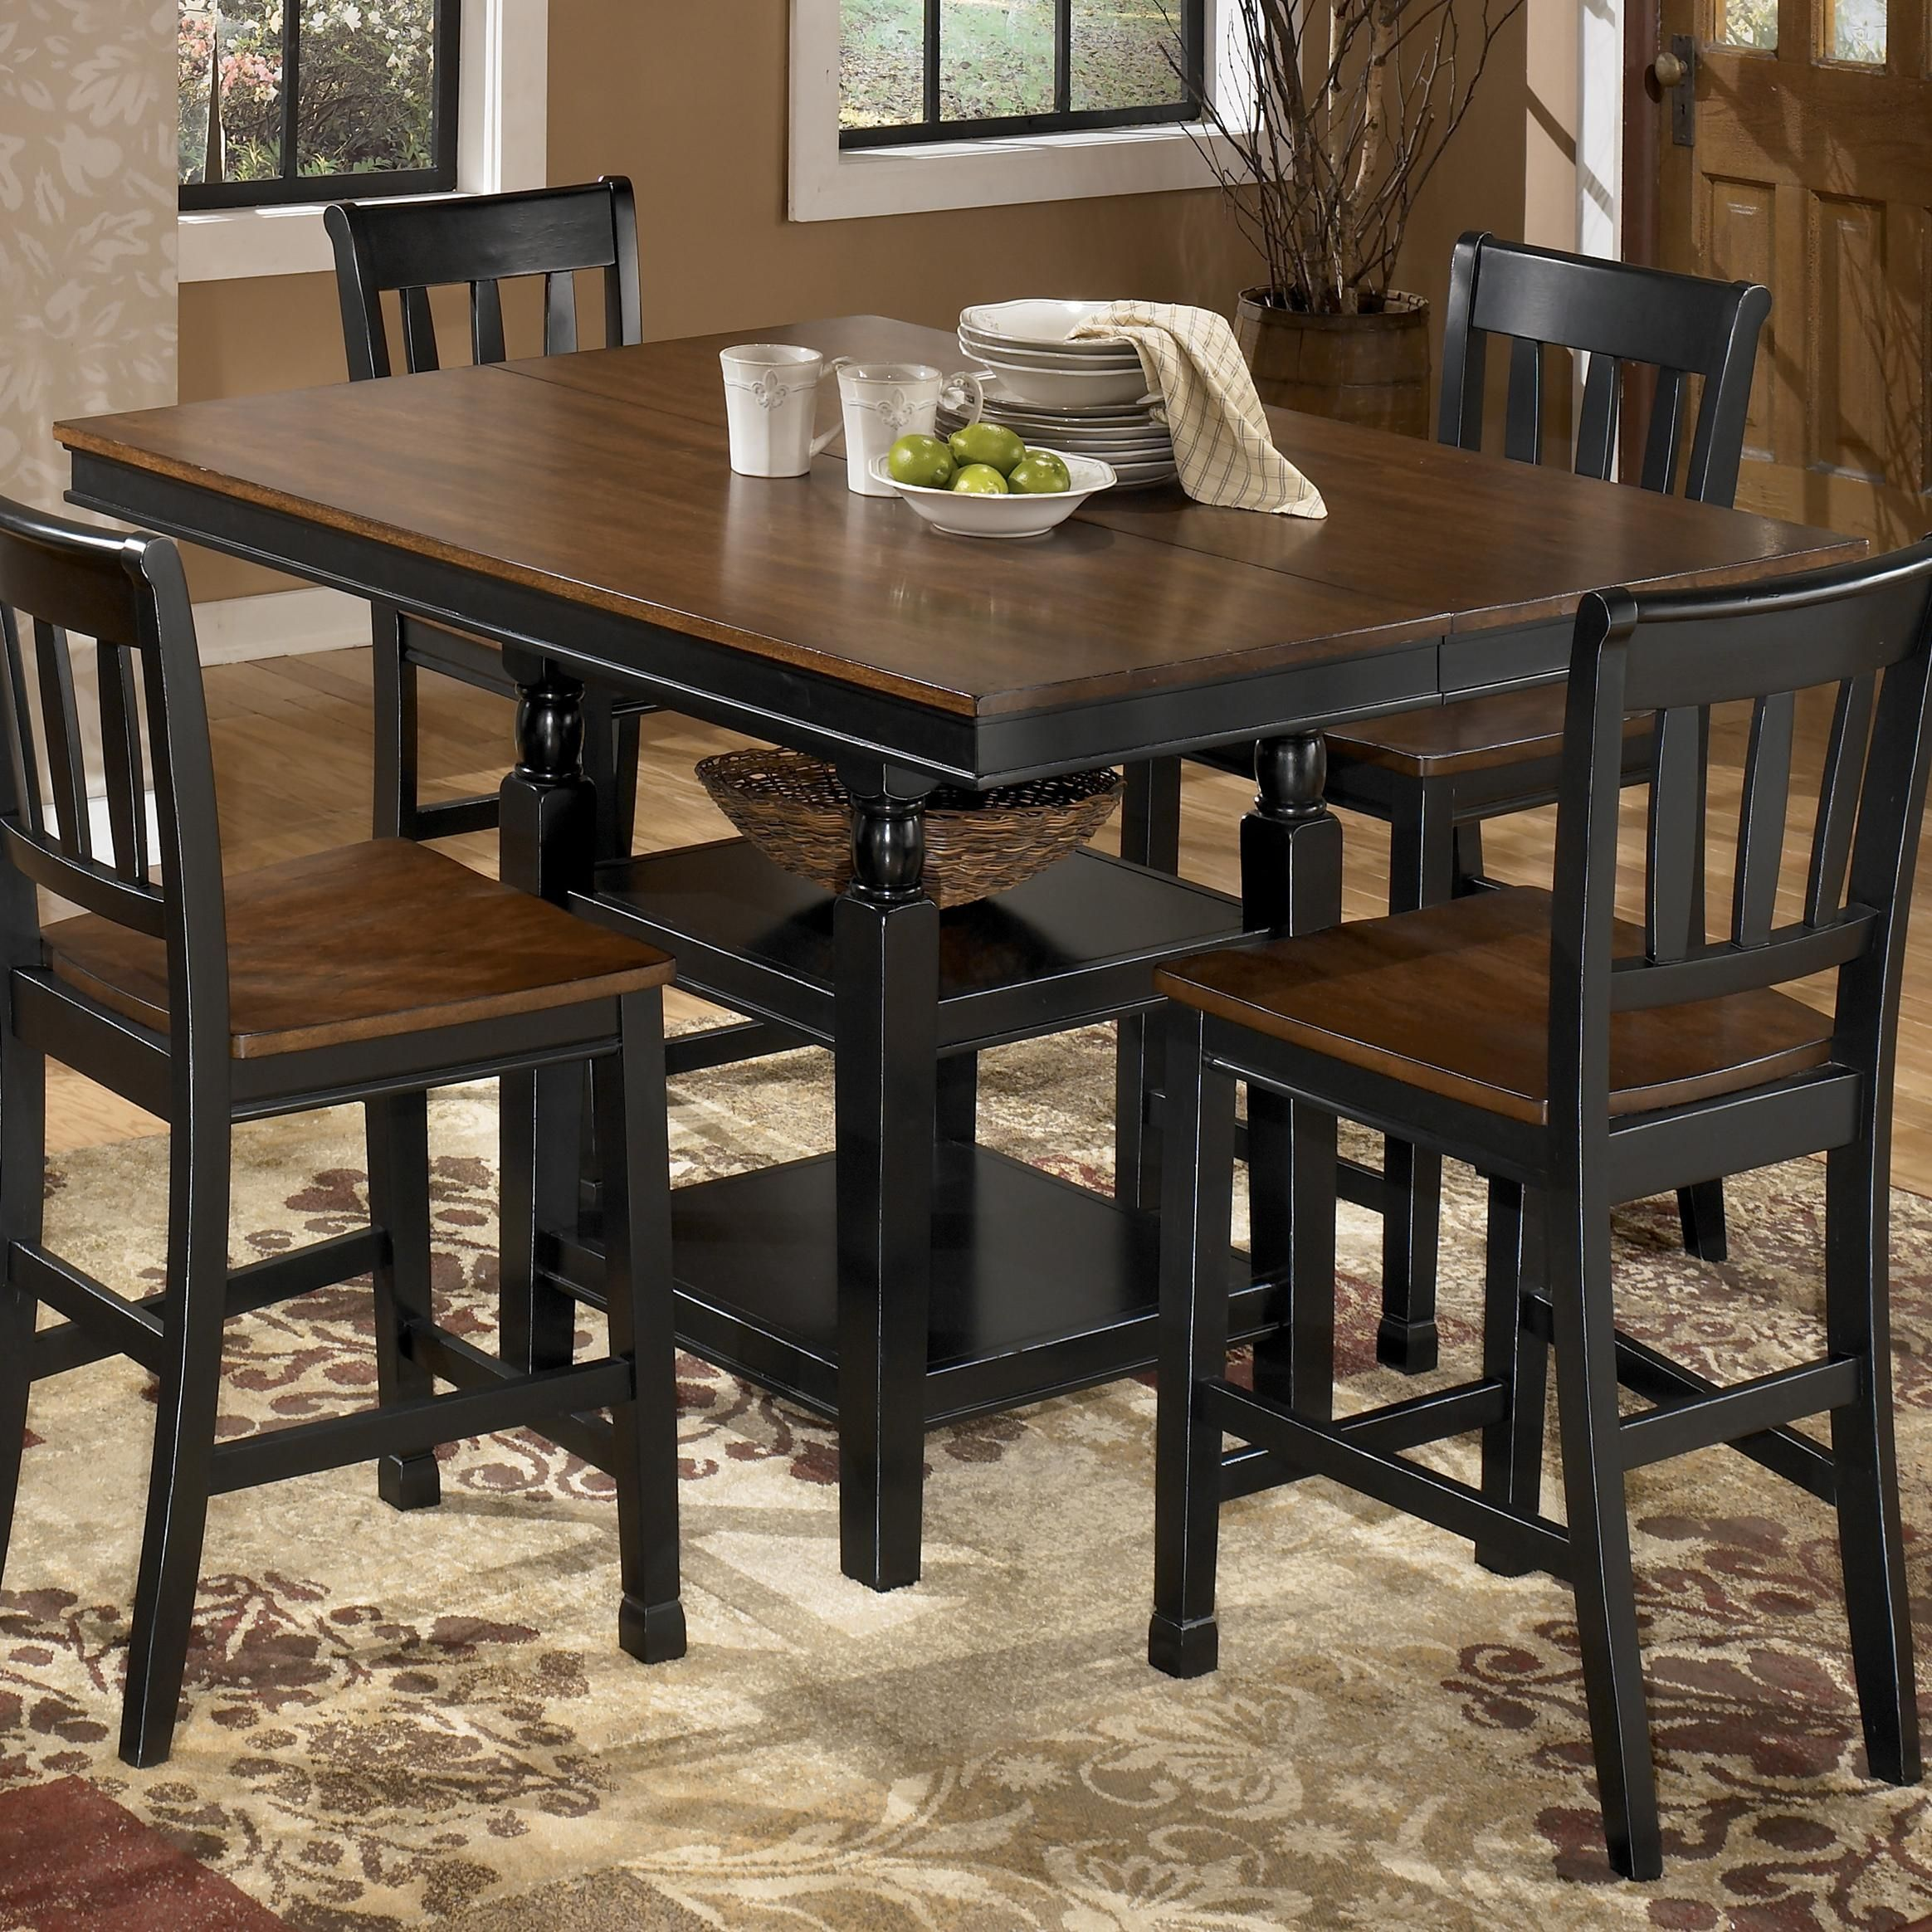 Owingsville Square Dining Room Counter Extension Table With